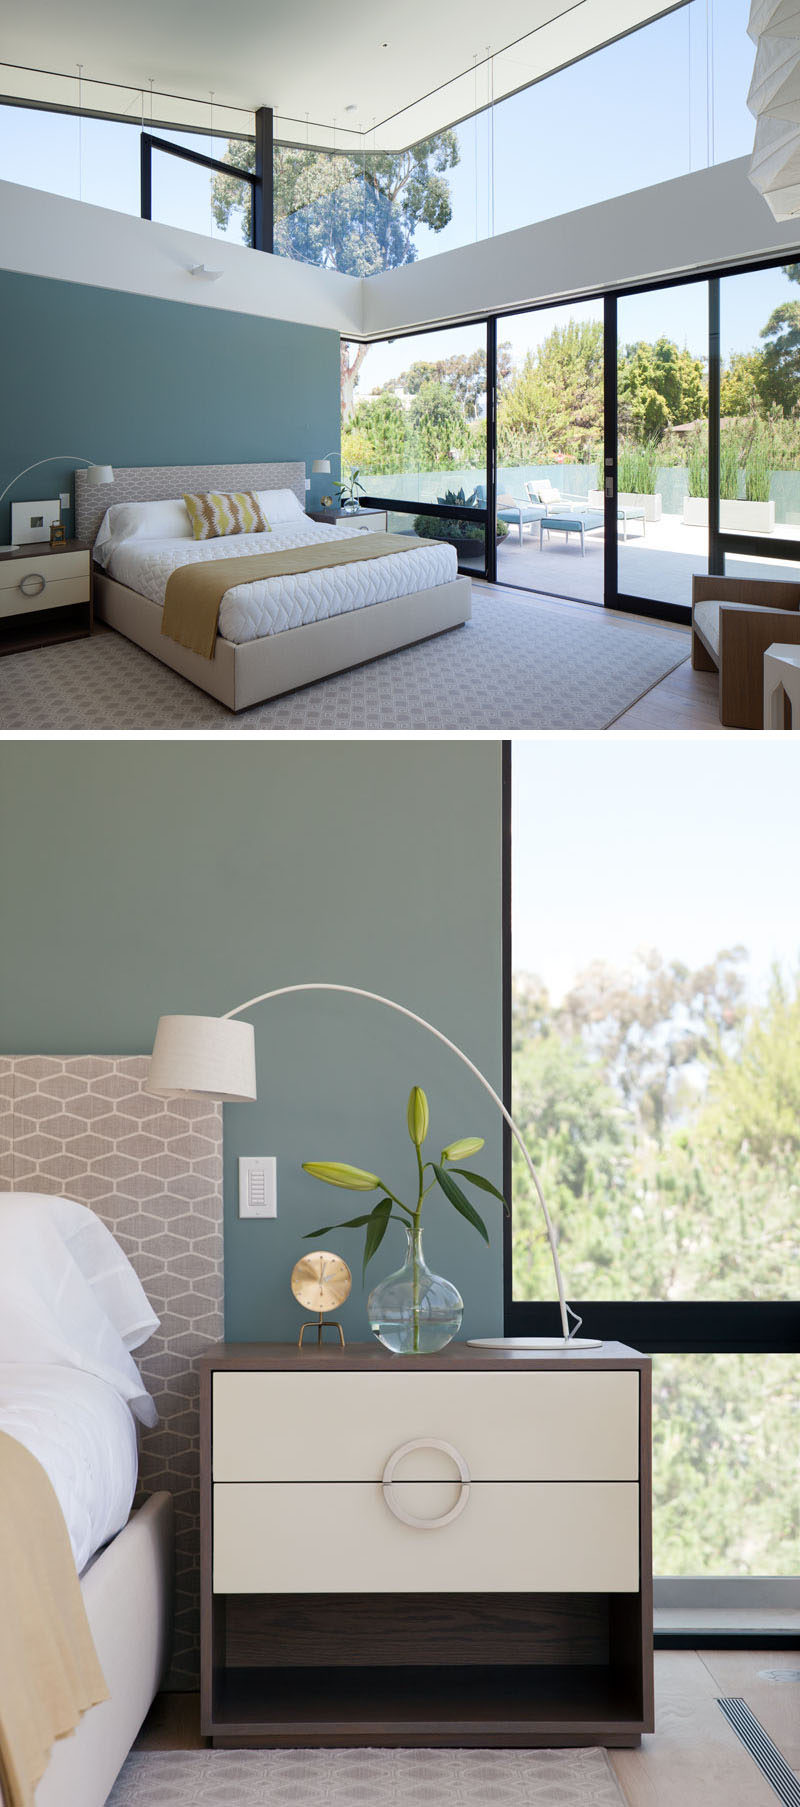 In this modern bedroom, a deep soft teal accent wall has been added for a touch of color, and sliding glass doors open to a private patio with views of the surrounding trees.